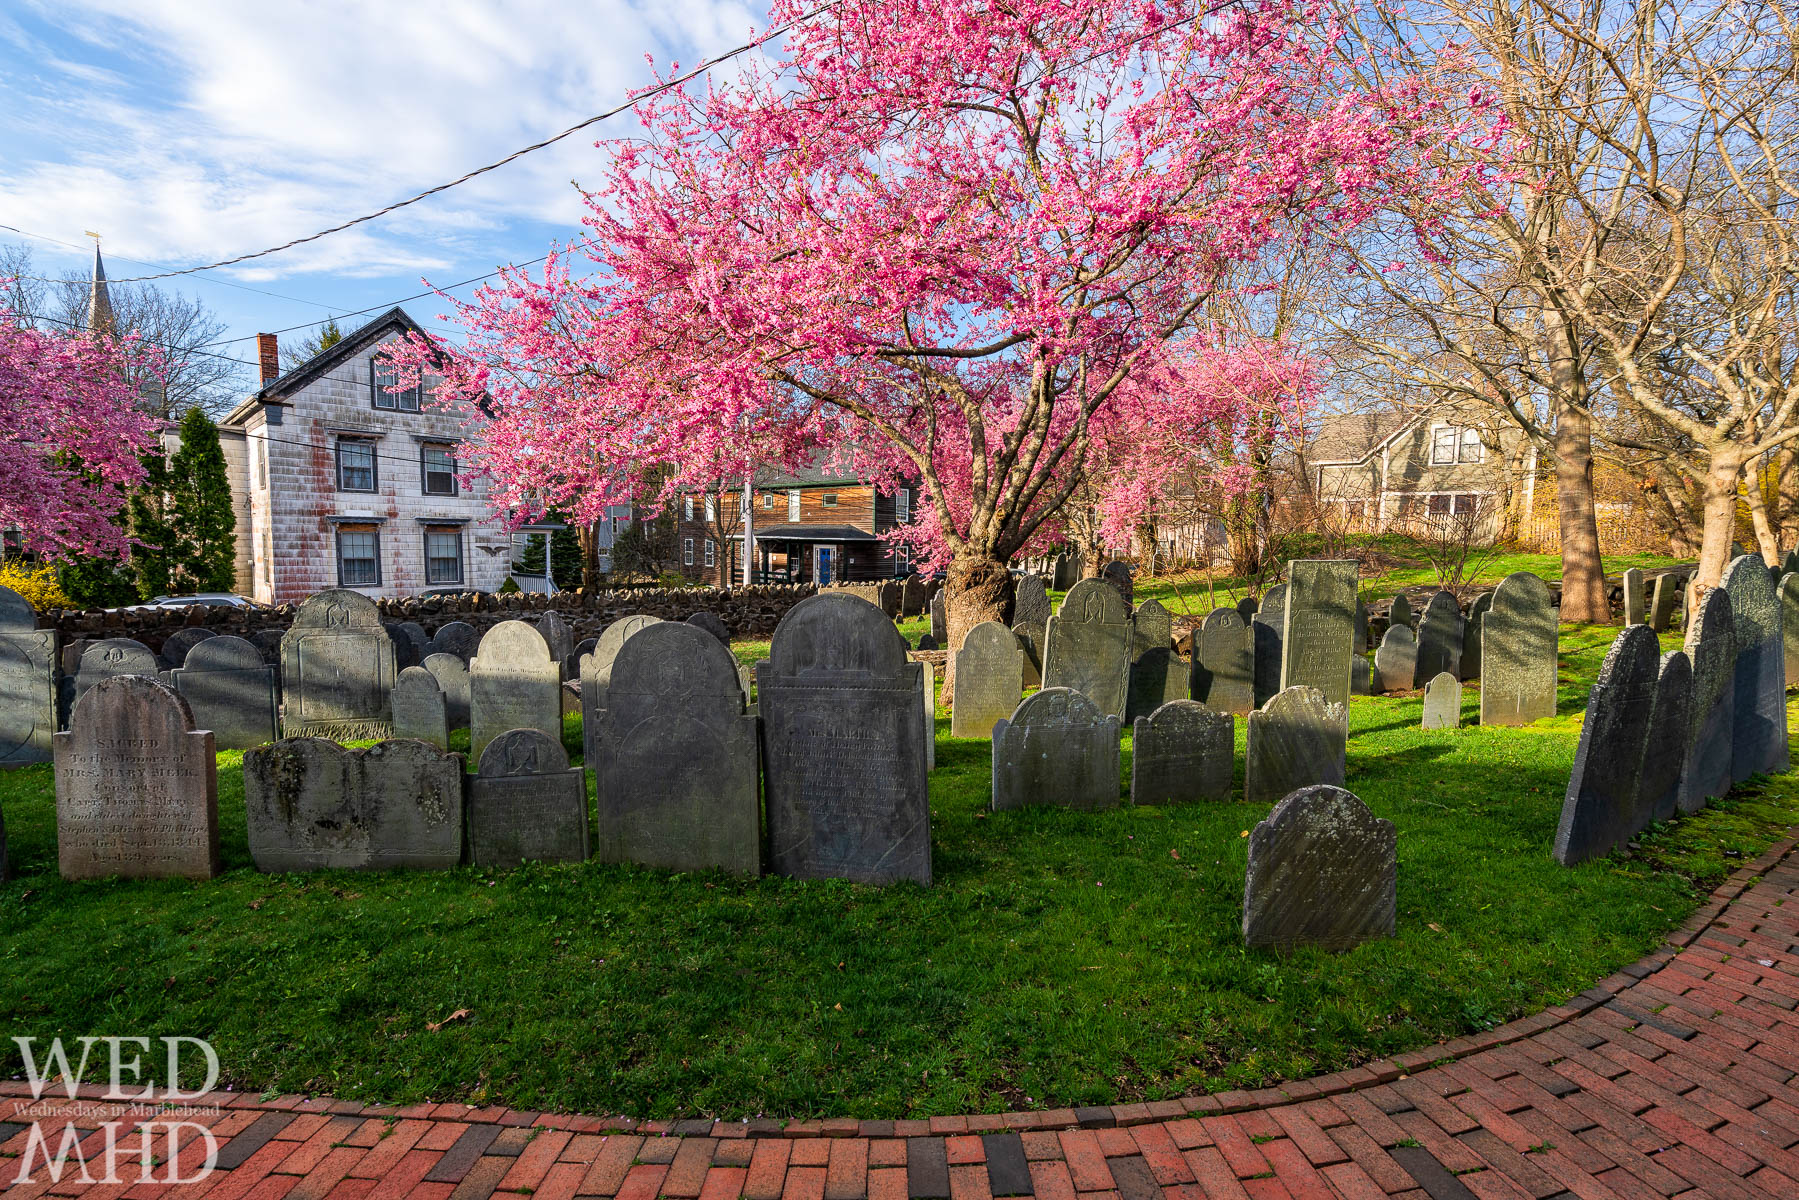 As the days warm, spring beckons and all signs point towards the cherry blossoms coming to Marblehead and the Harris Street cemetery